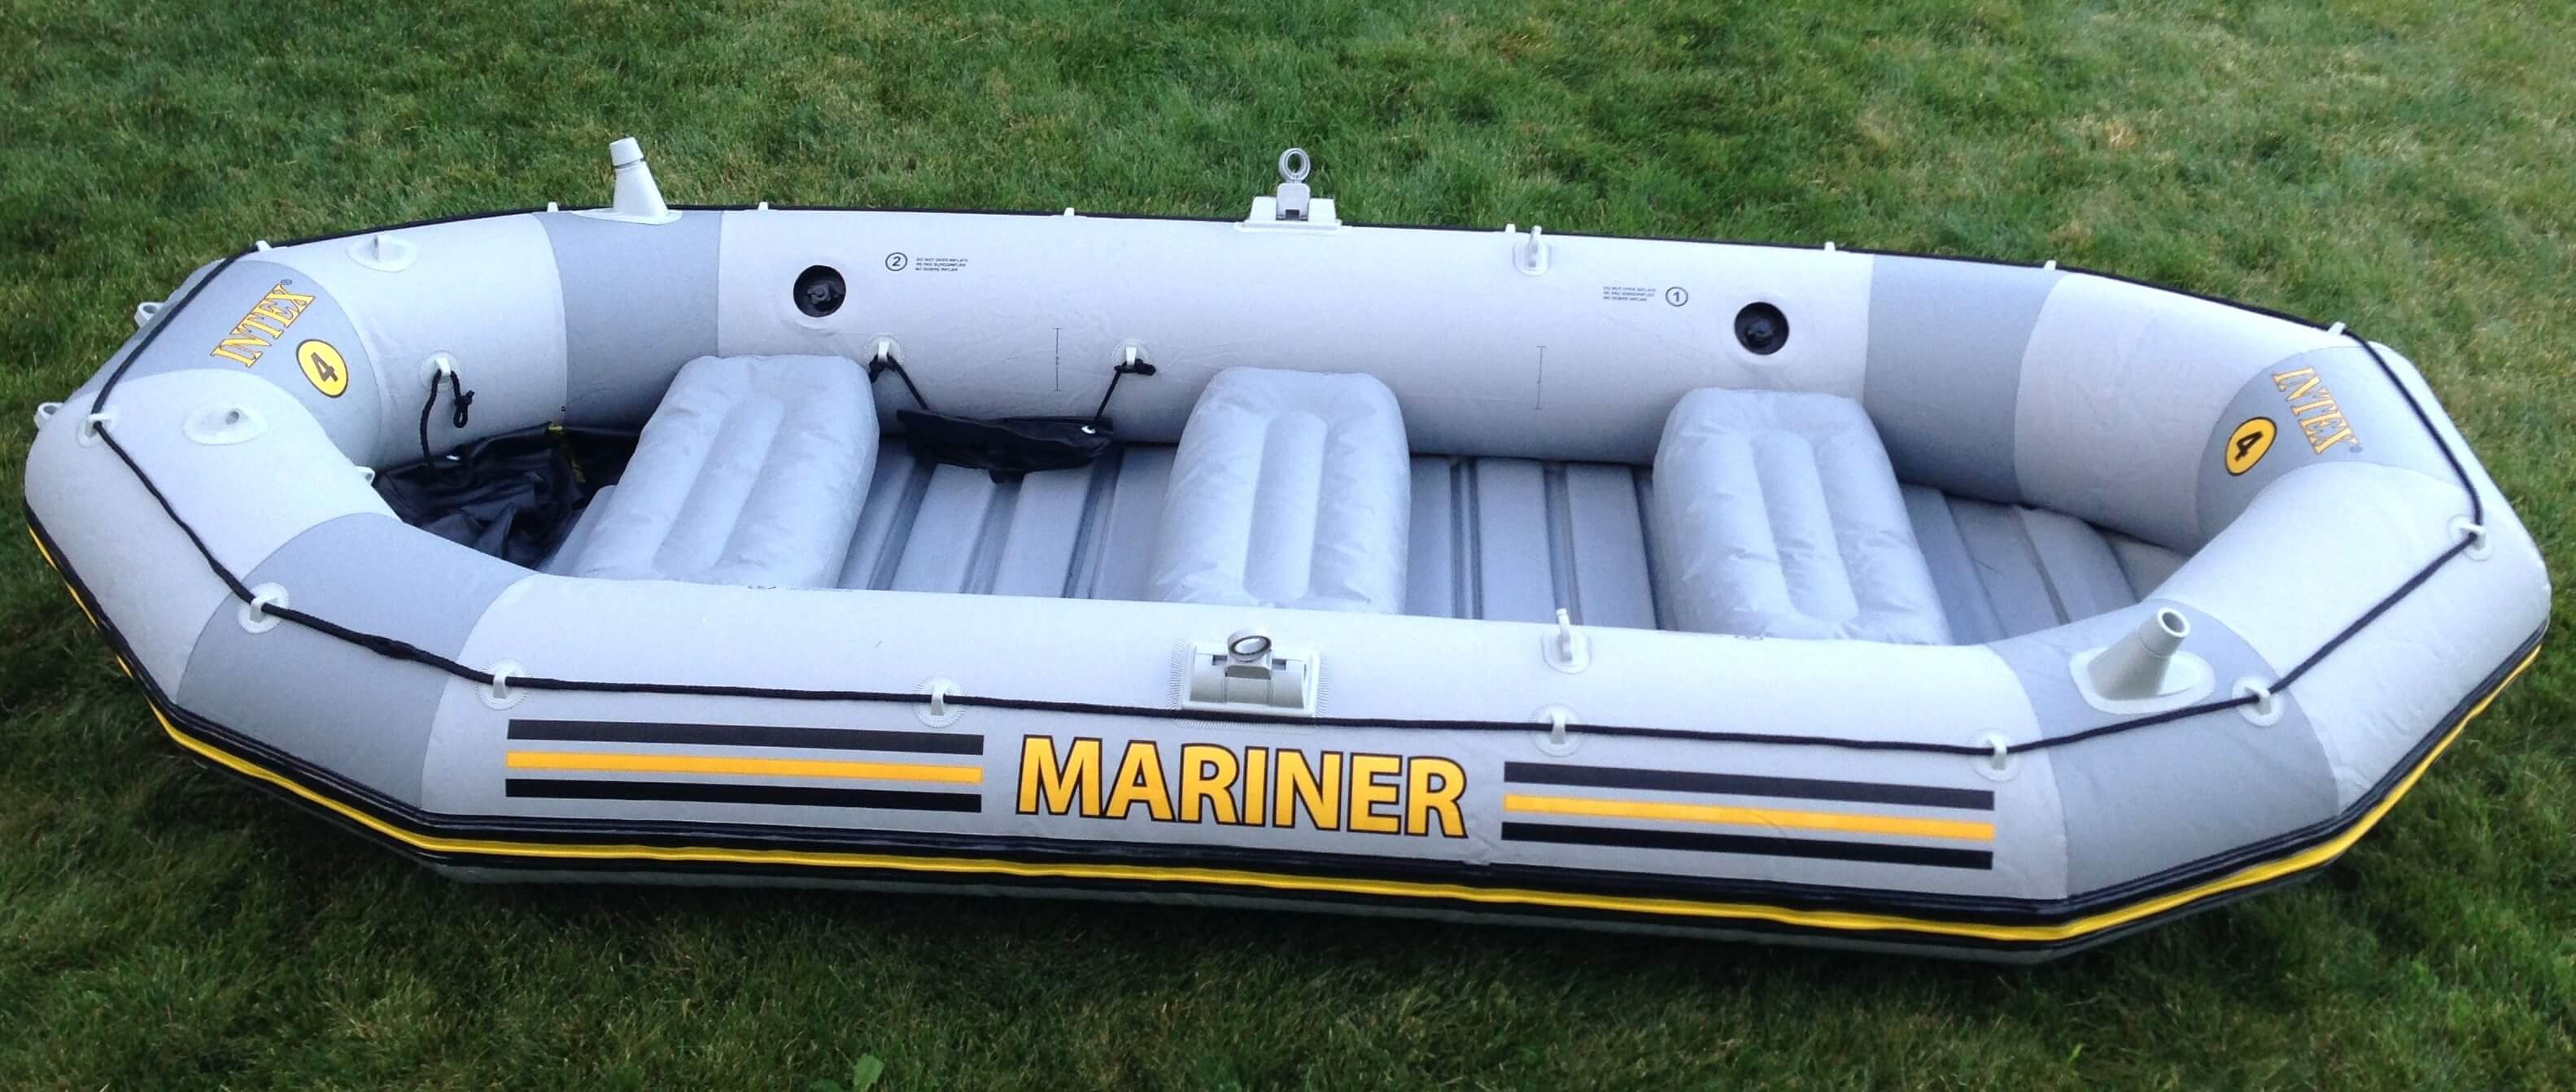 Amazon Intex 4 Person Mariner Inflatable Boat Set